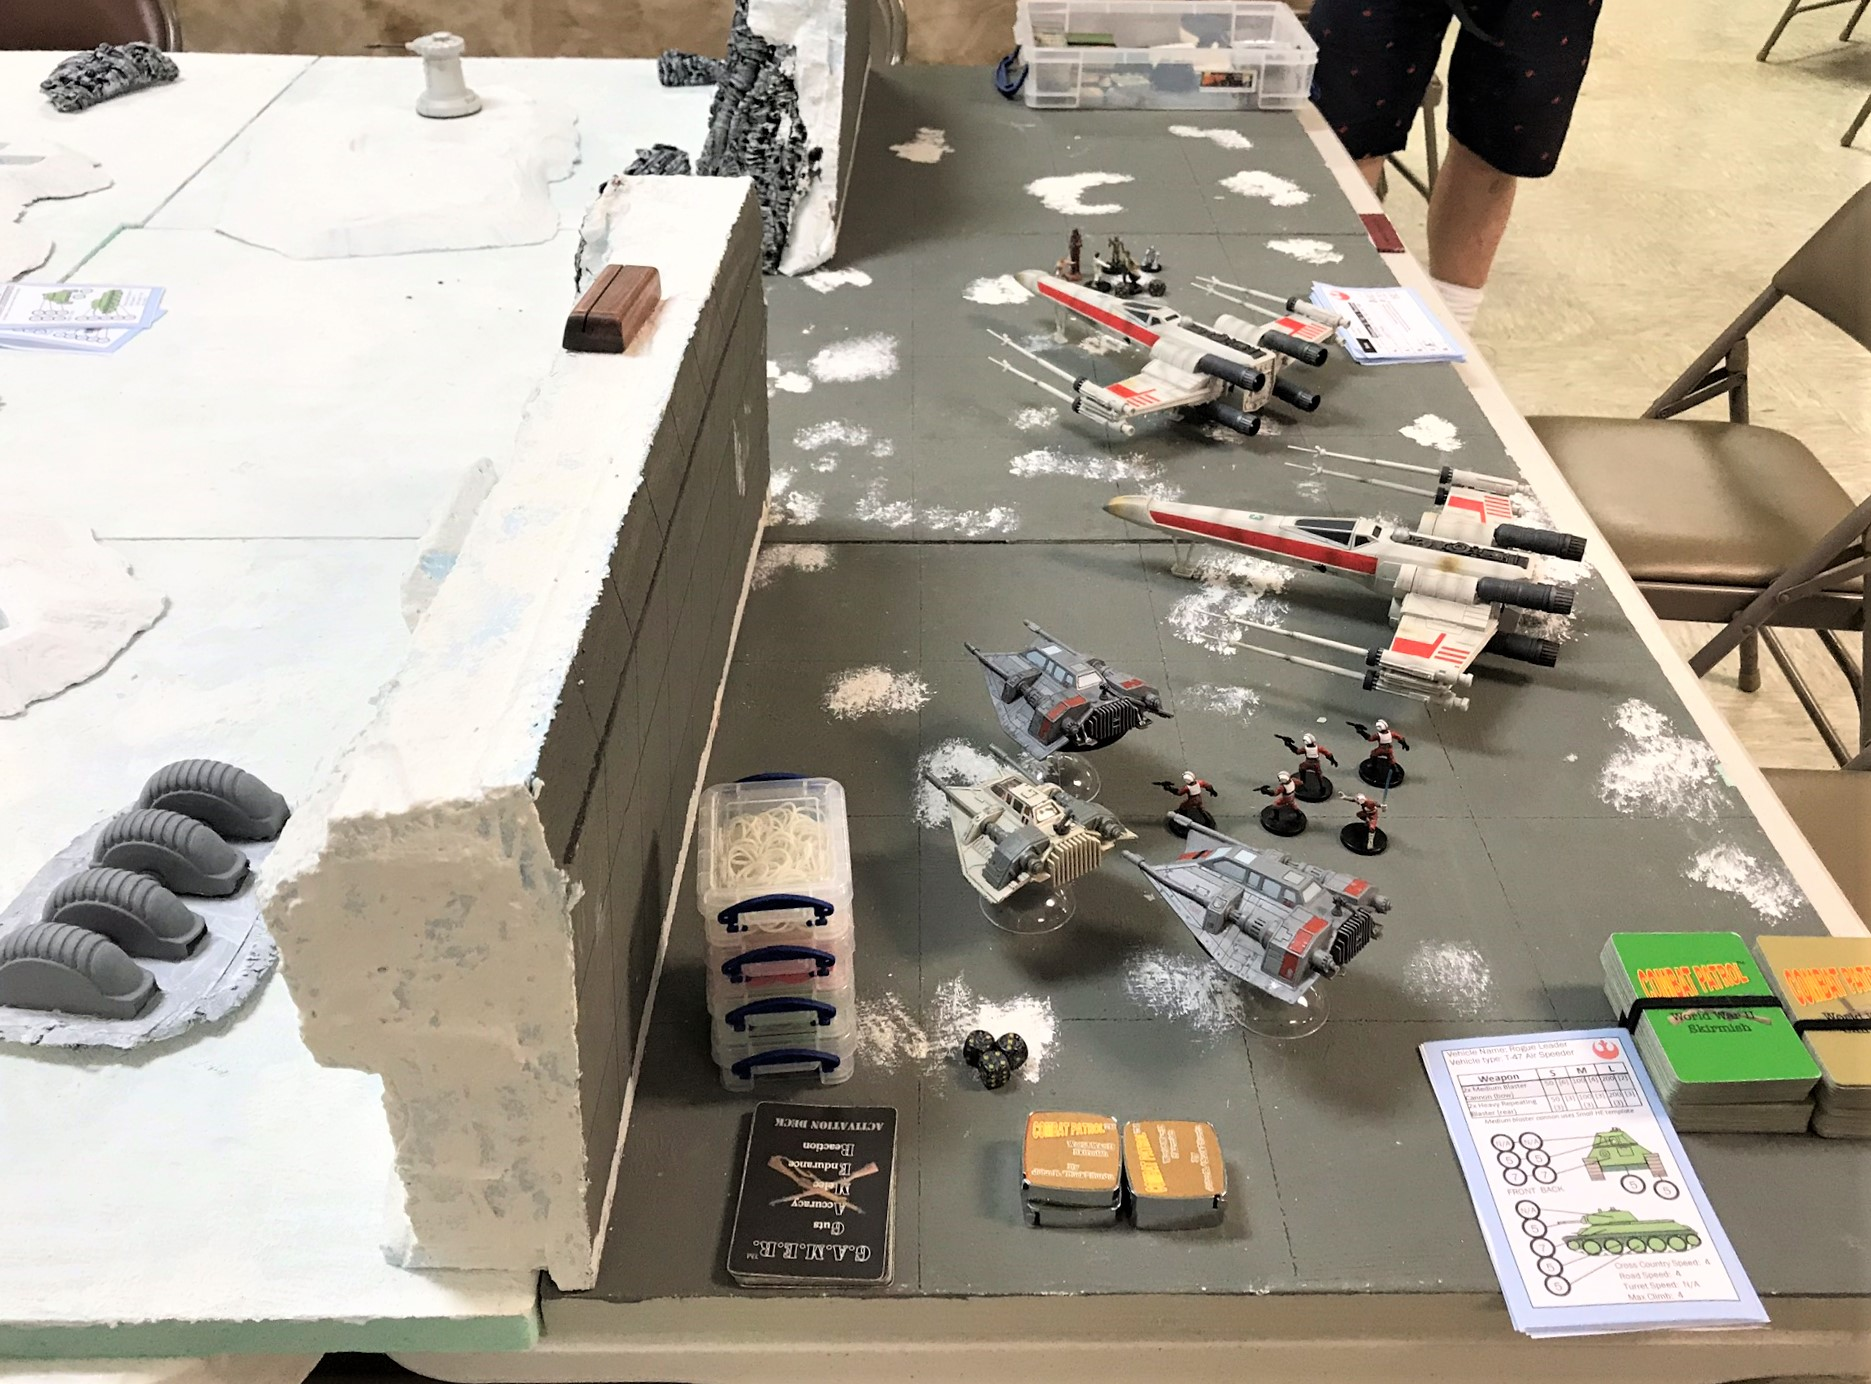 32 Battle of Hoth